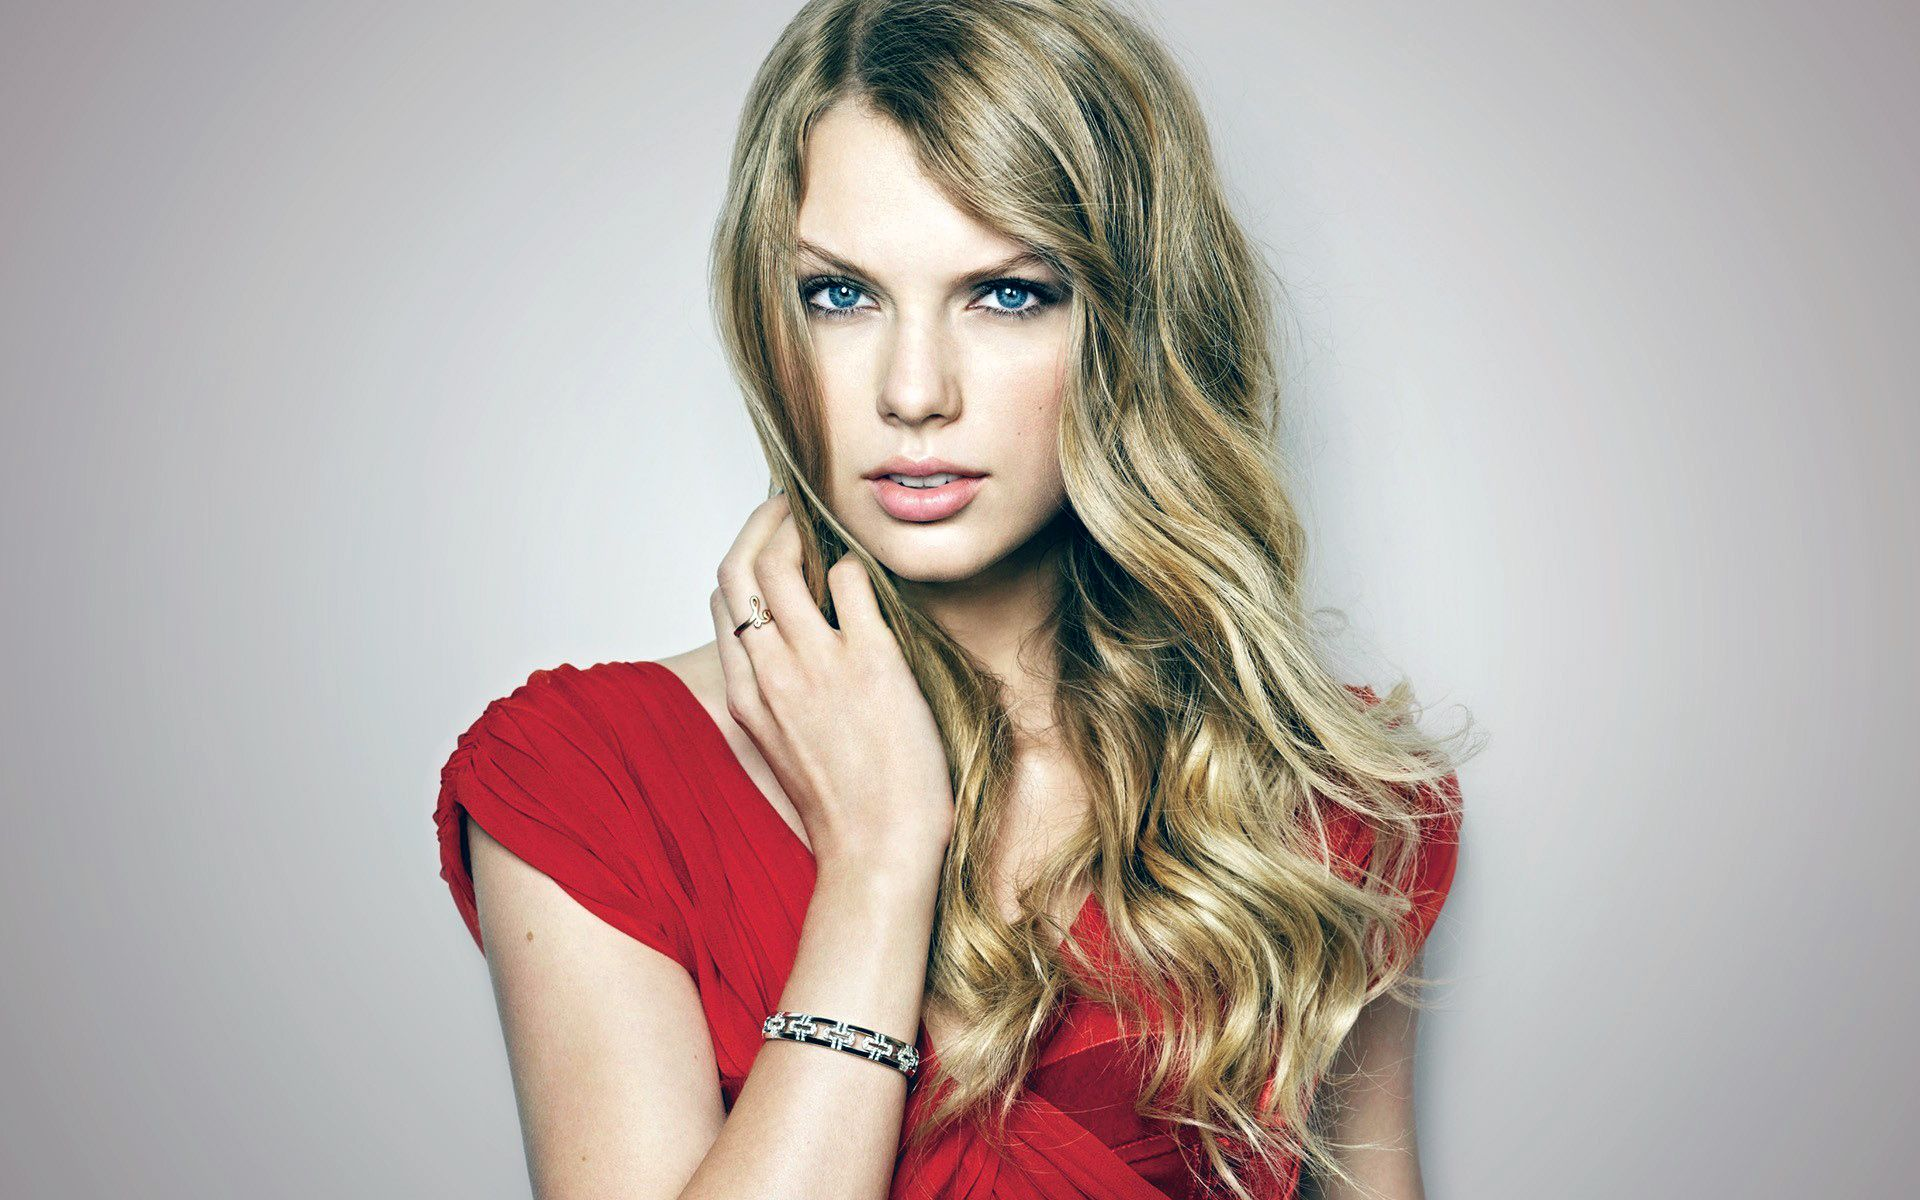 Taylor Swift 2015 Wallpapers Pictures Images 1920x1200